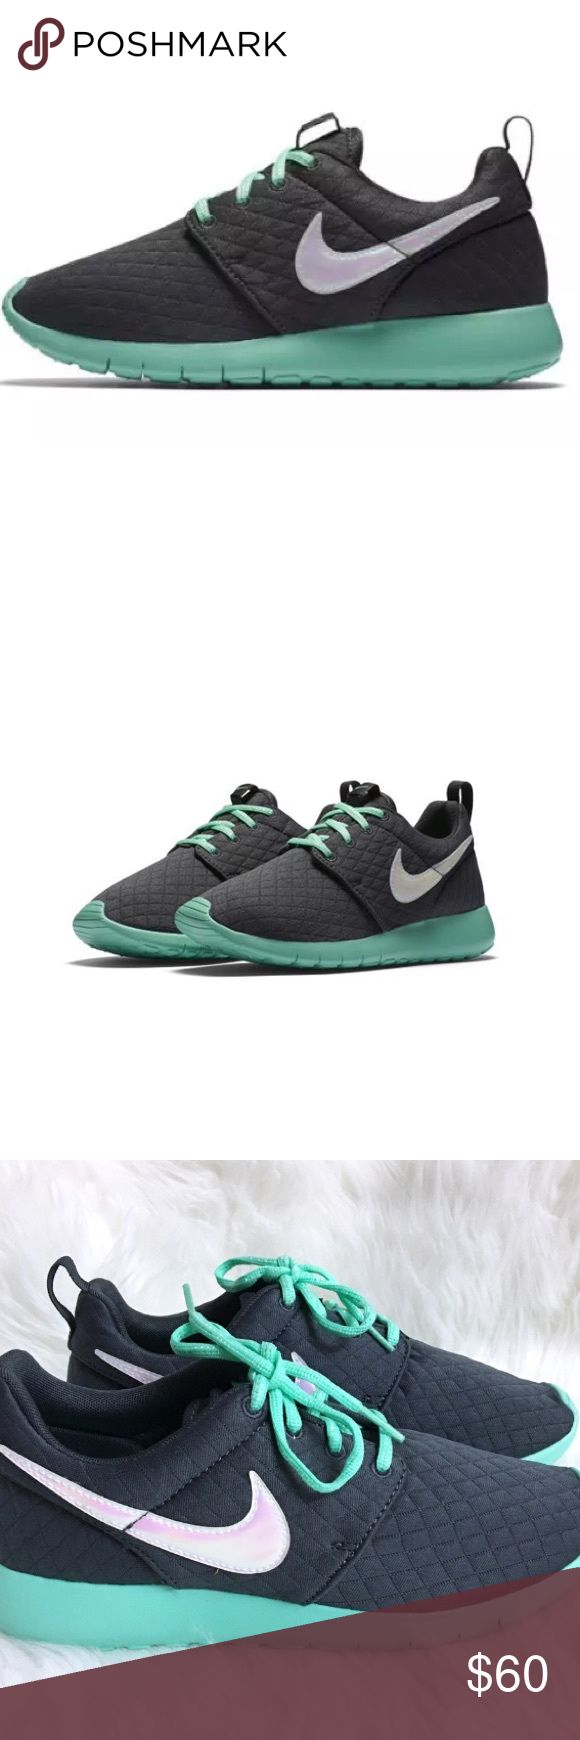 NIKE ROSHE ONE SE WOMENS SHOES SIZE 7.5 GRAY Brand new without box. Size 6 youth which is a women's size 7.5. I have added a sizing chart for your Convenience. Nike Shoes Sneakers